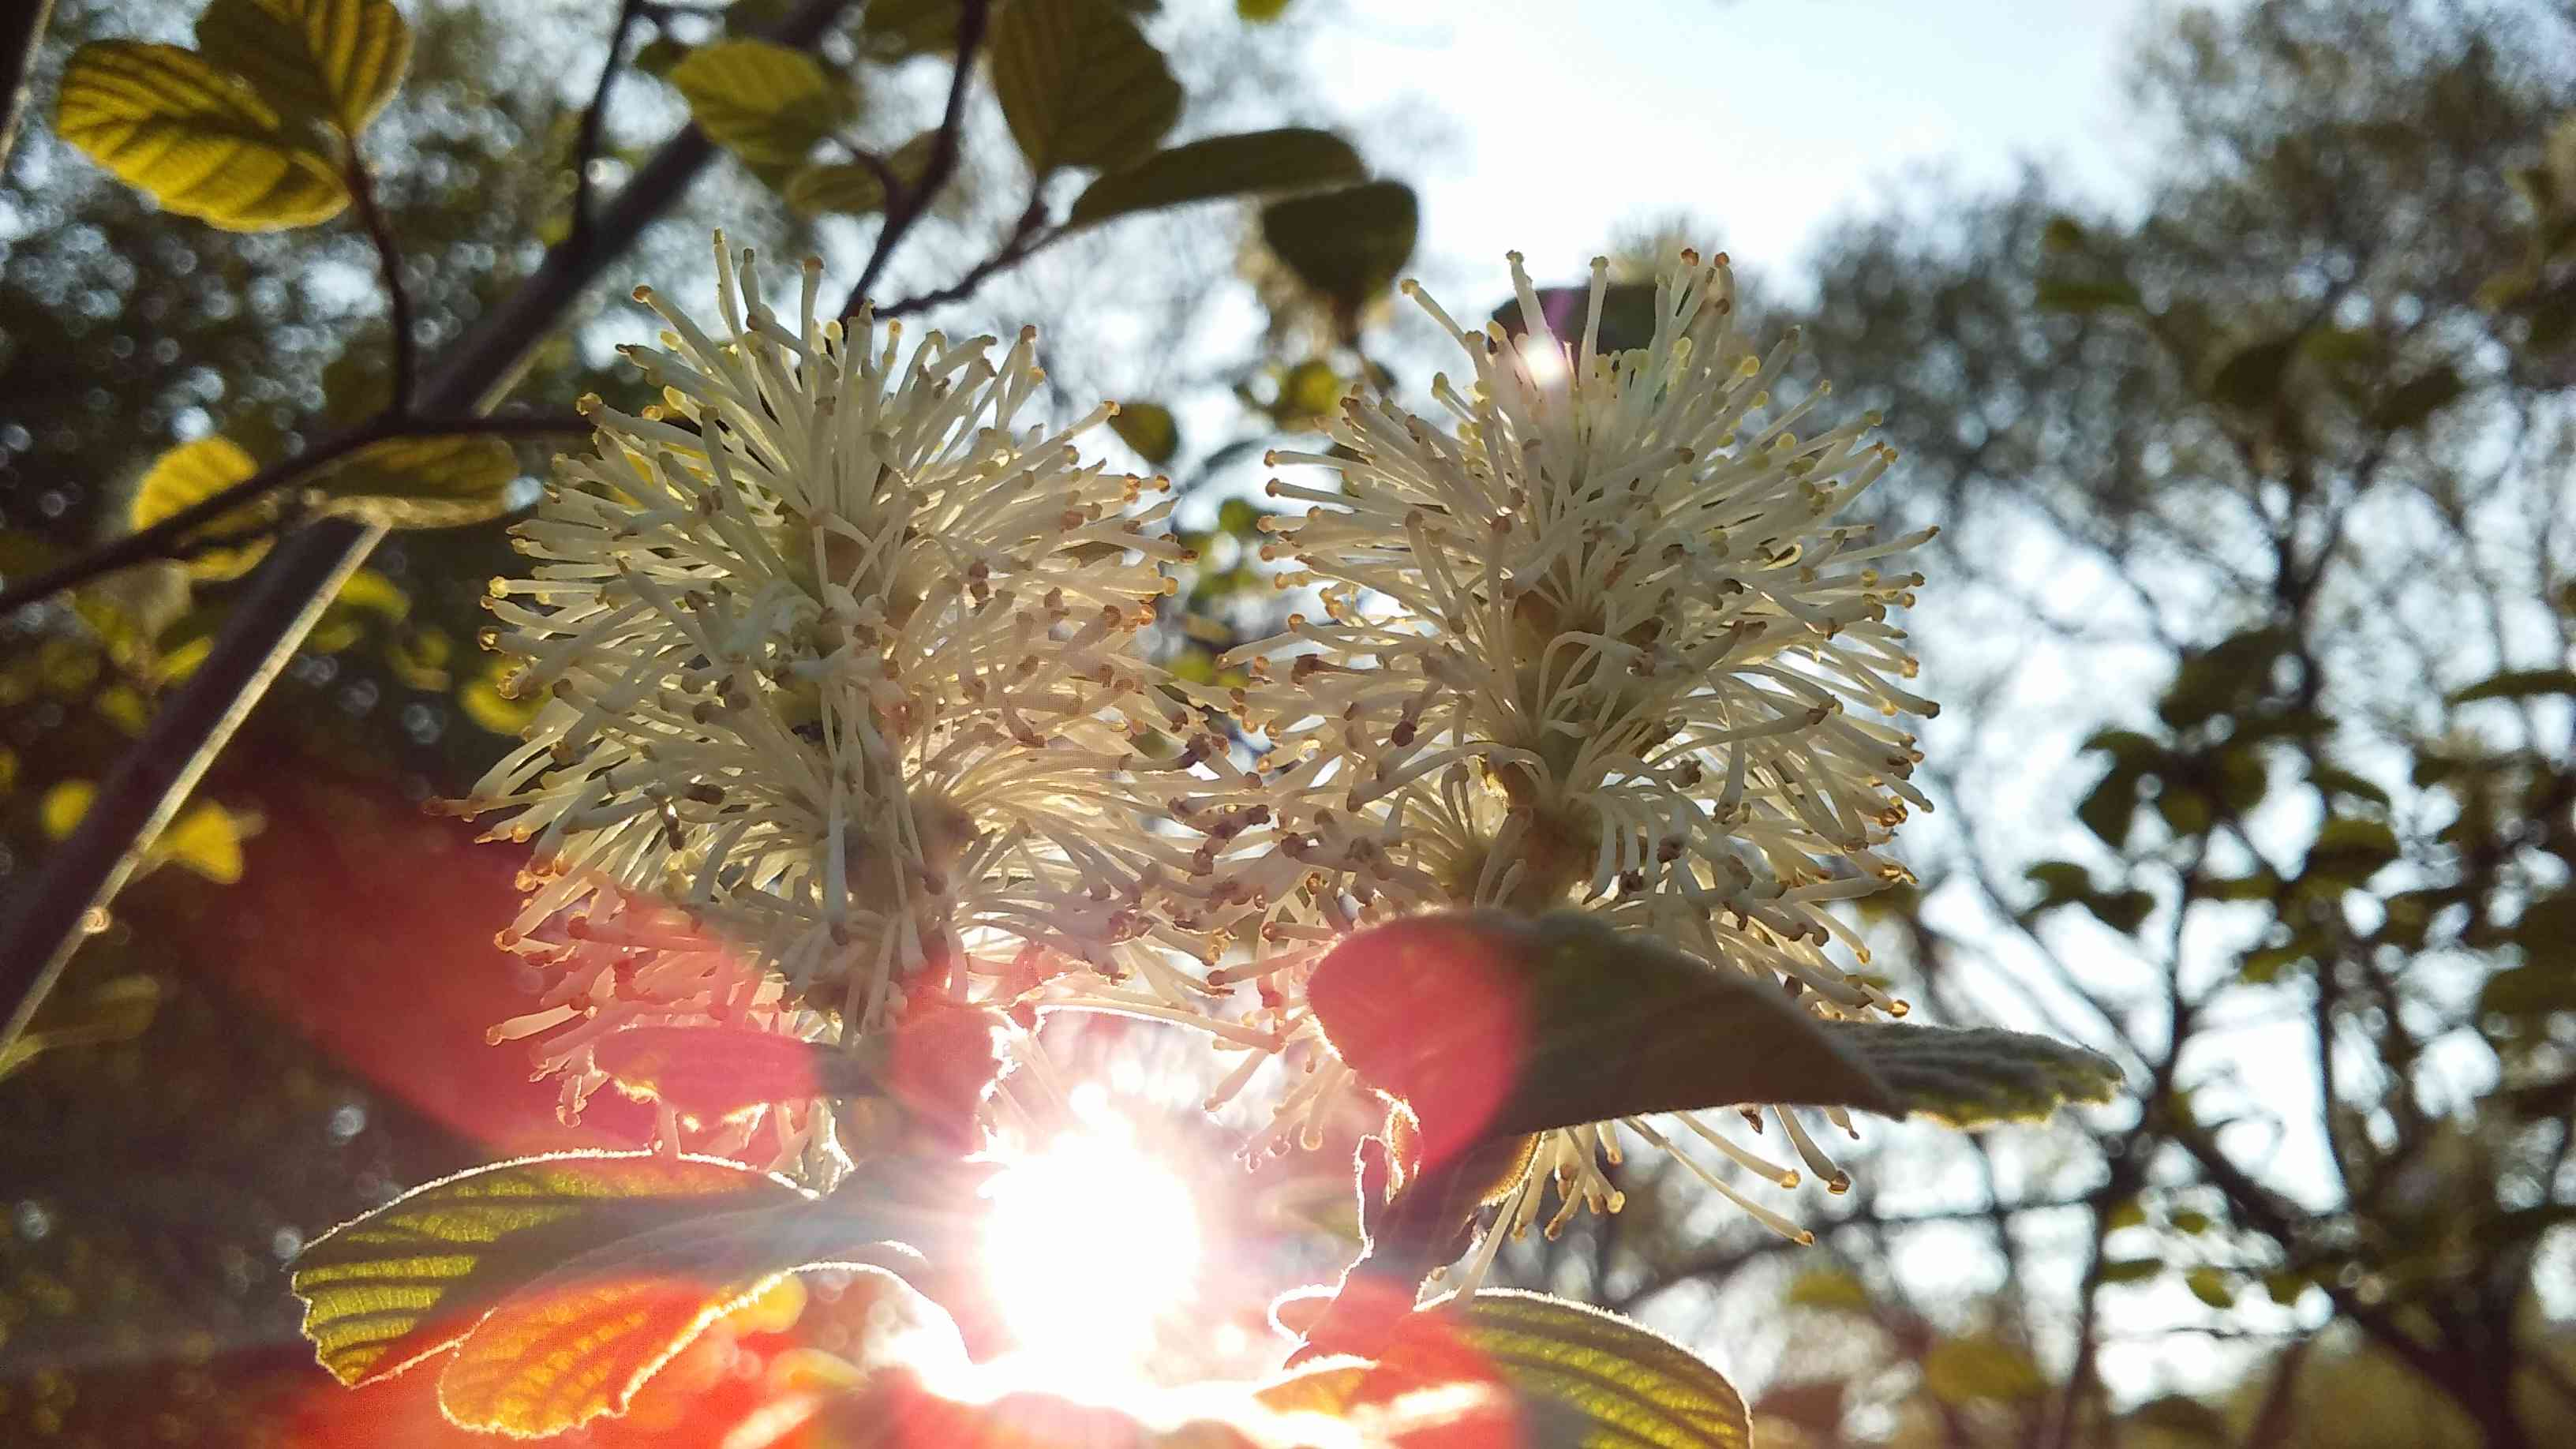 Fothergilla Plant Blossoming in Spring